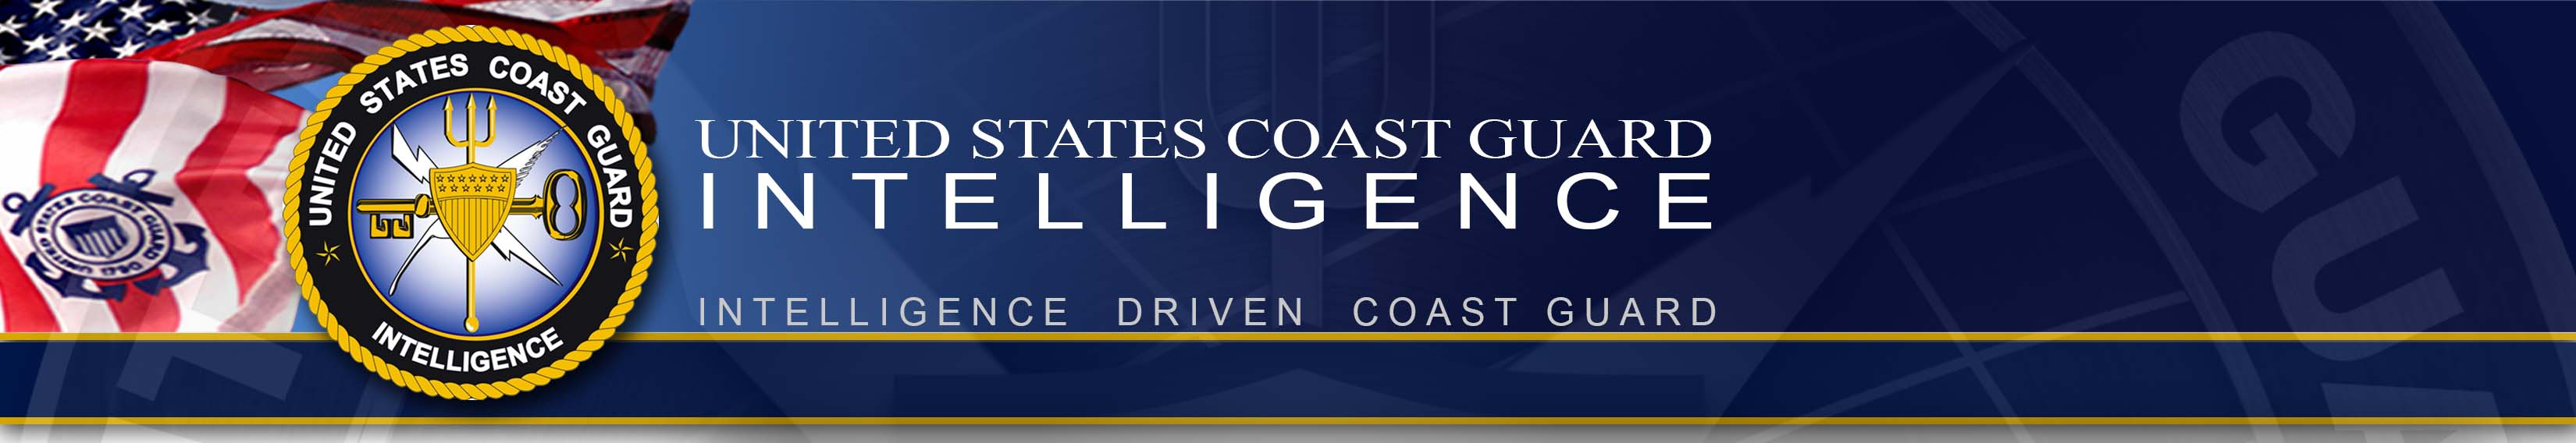 Coast Guard Intelligence Banner